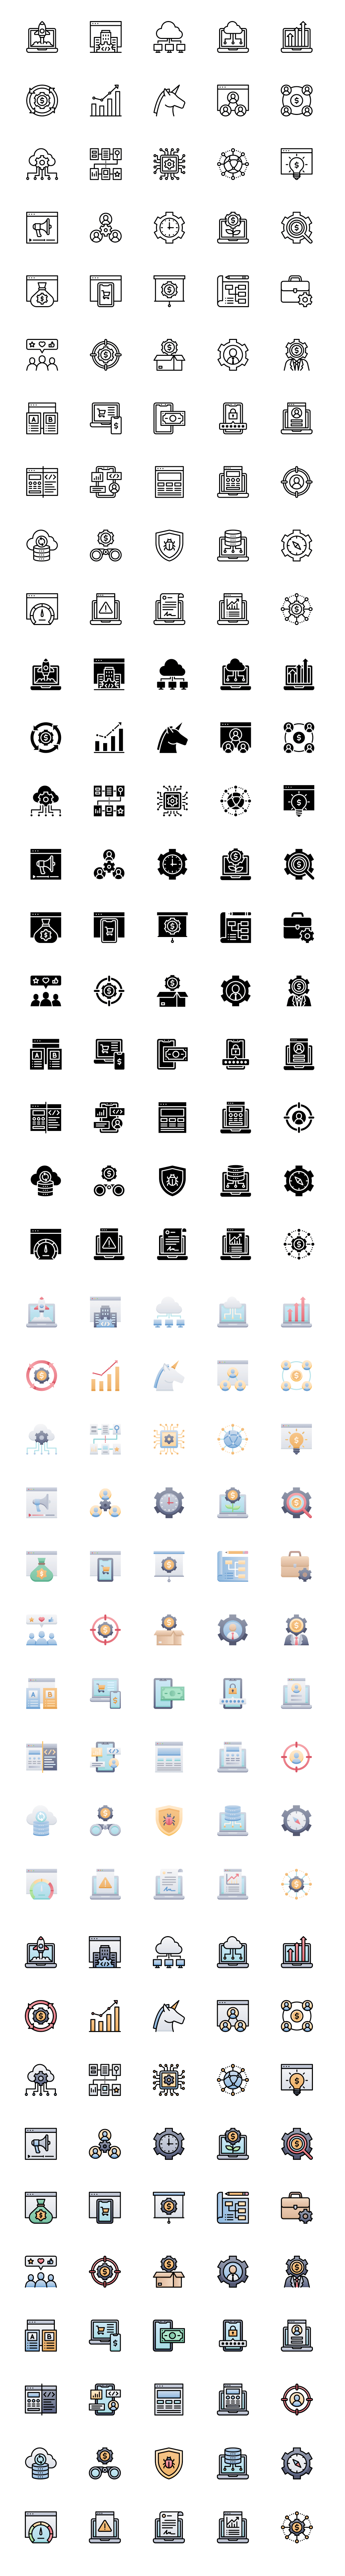 50 Startups and SaaS Free Icons - Icons for startups, SaaS, ecommerce, technology, and the digital world, all available to download and use for free for anything.